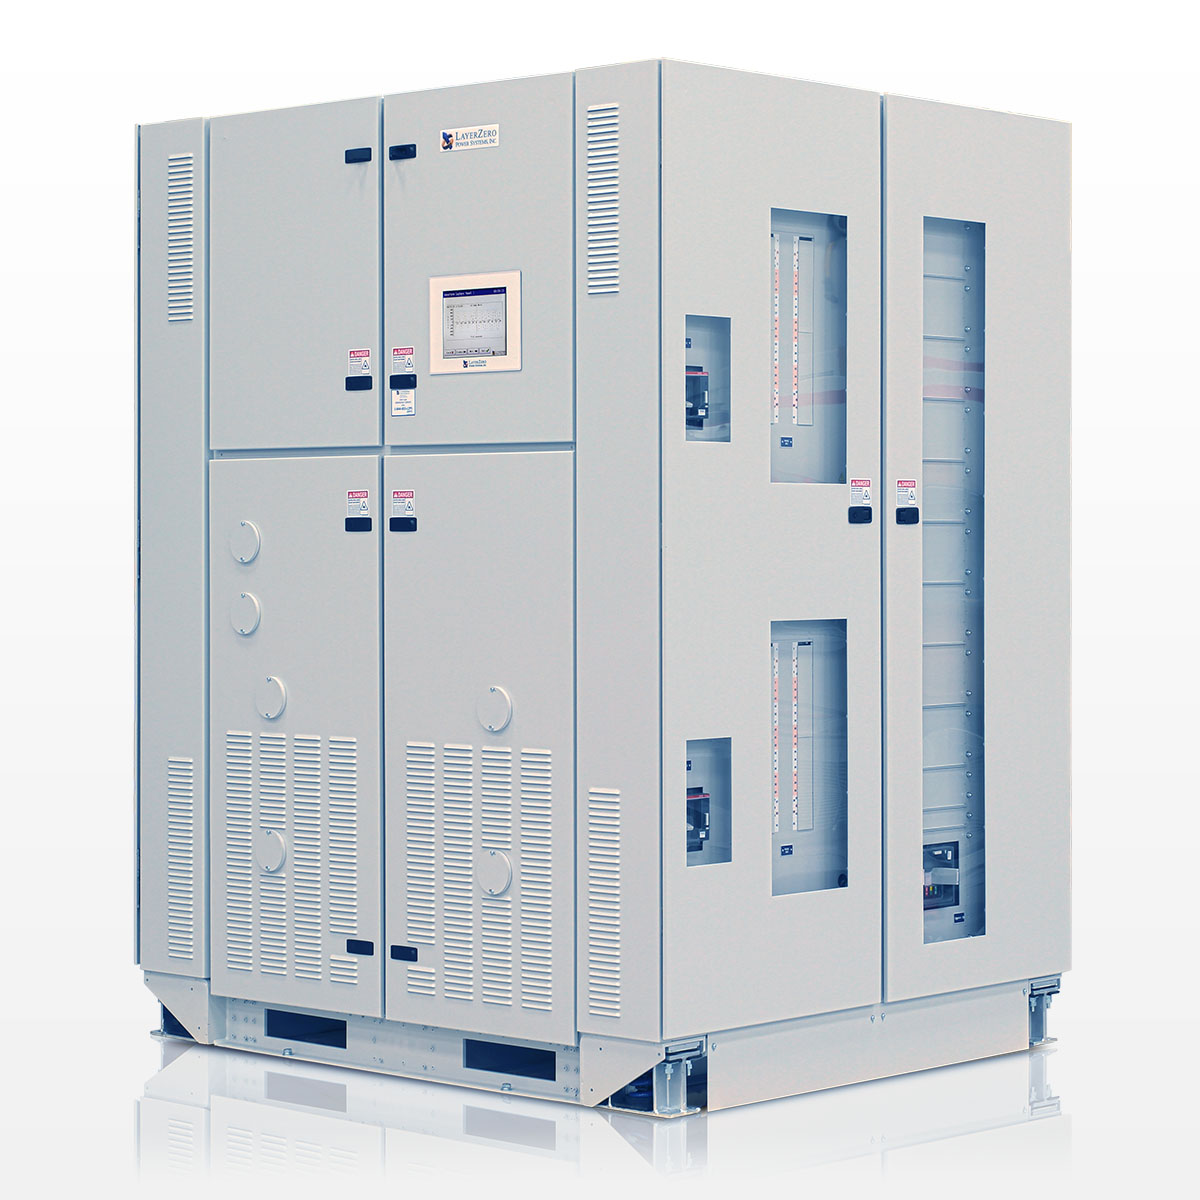 The LayerZero Series 70 ePODs: 500 kVA Type-X